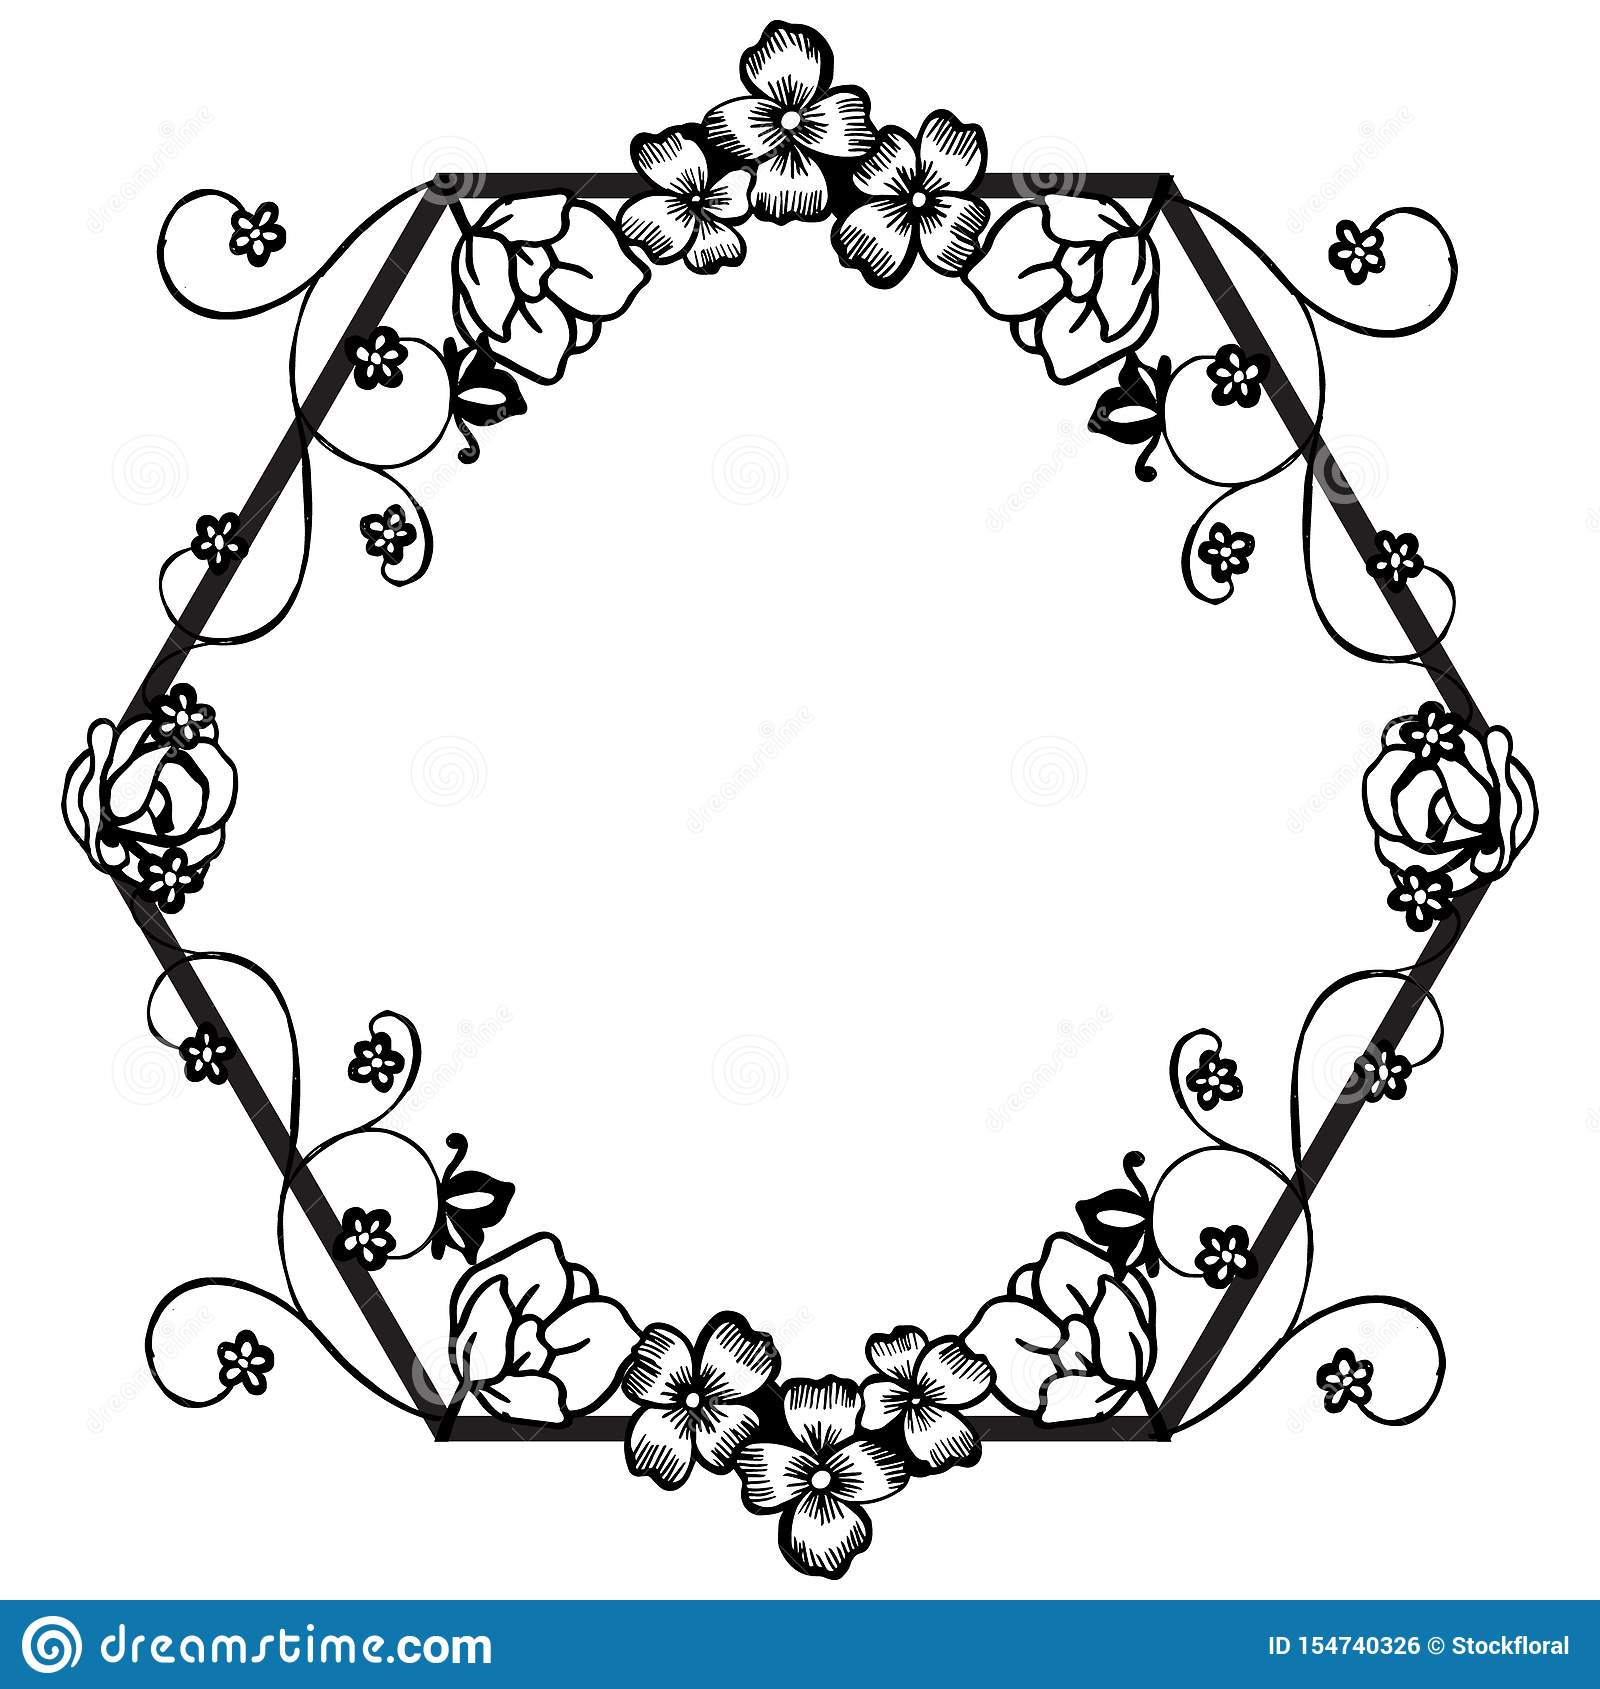 Simple Floral Border Drawing Black White Stock Illustrations 2 000 Simple Floral Border Drawing Black White Stock Illustrations Vectors Clipart Dreamstime